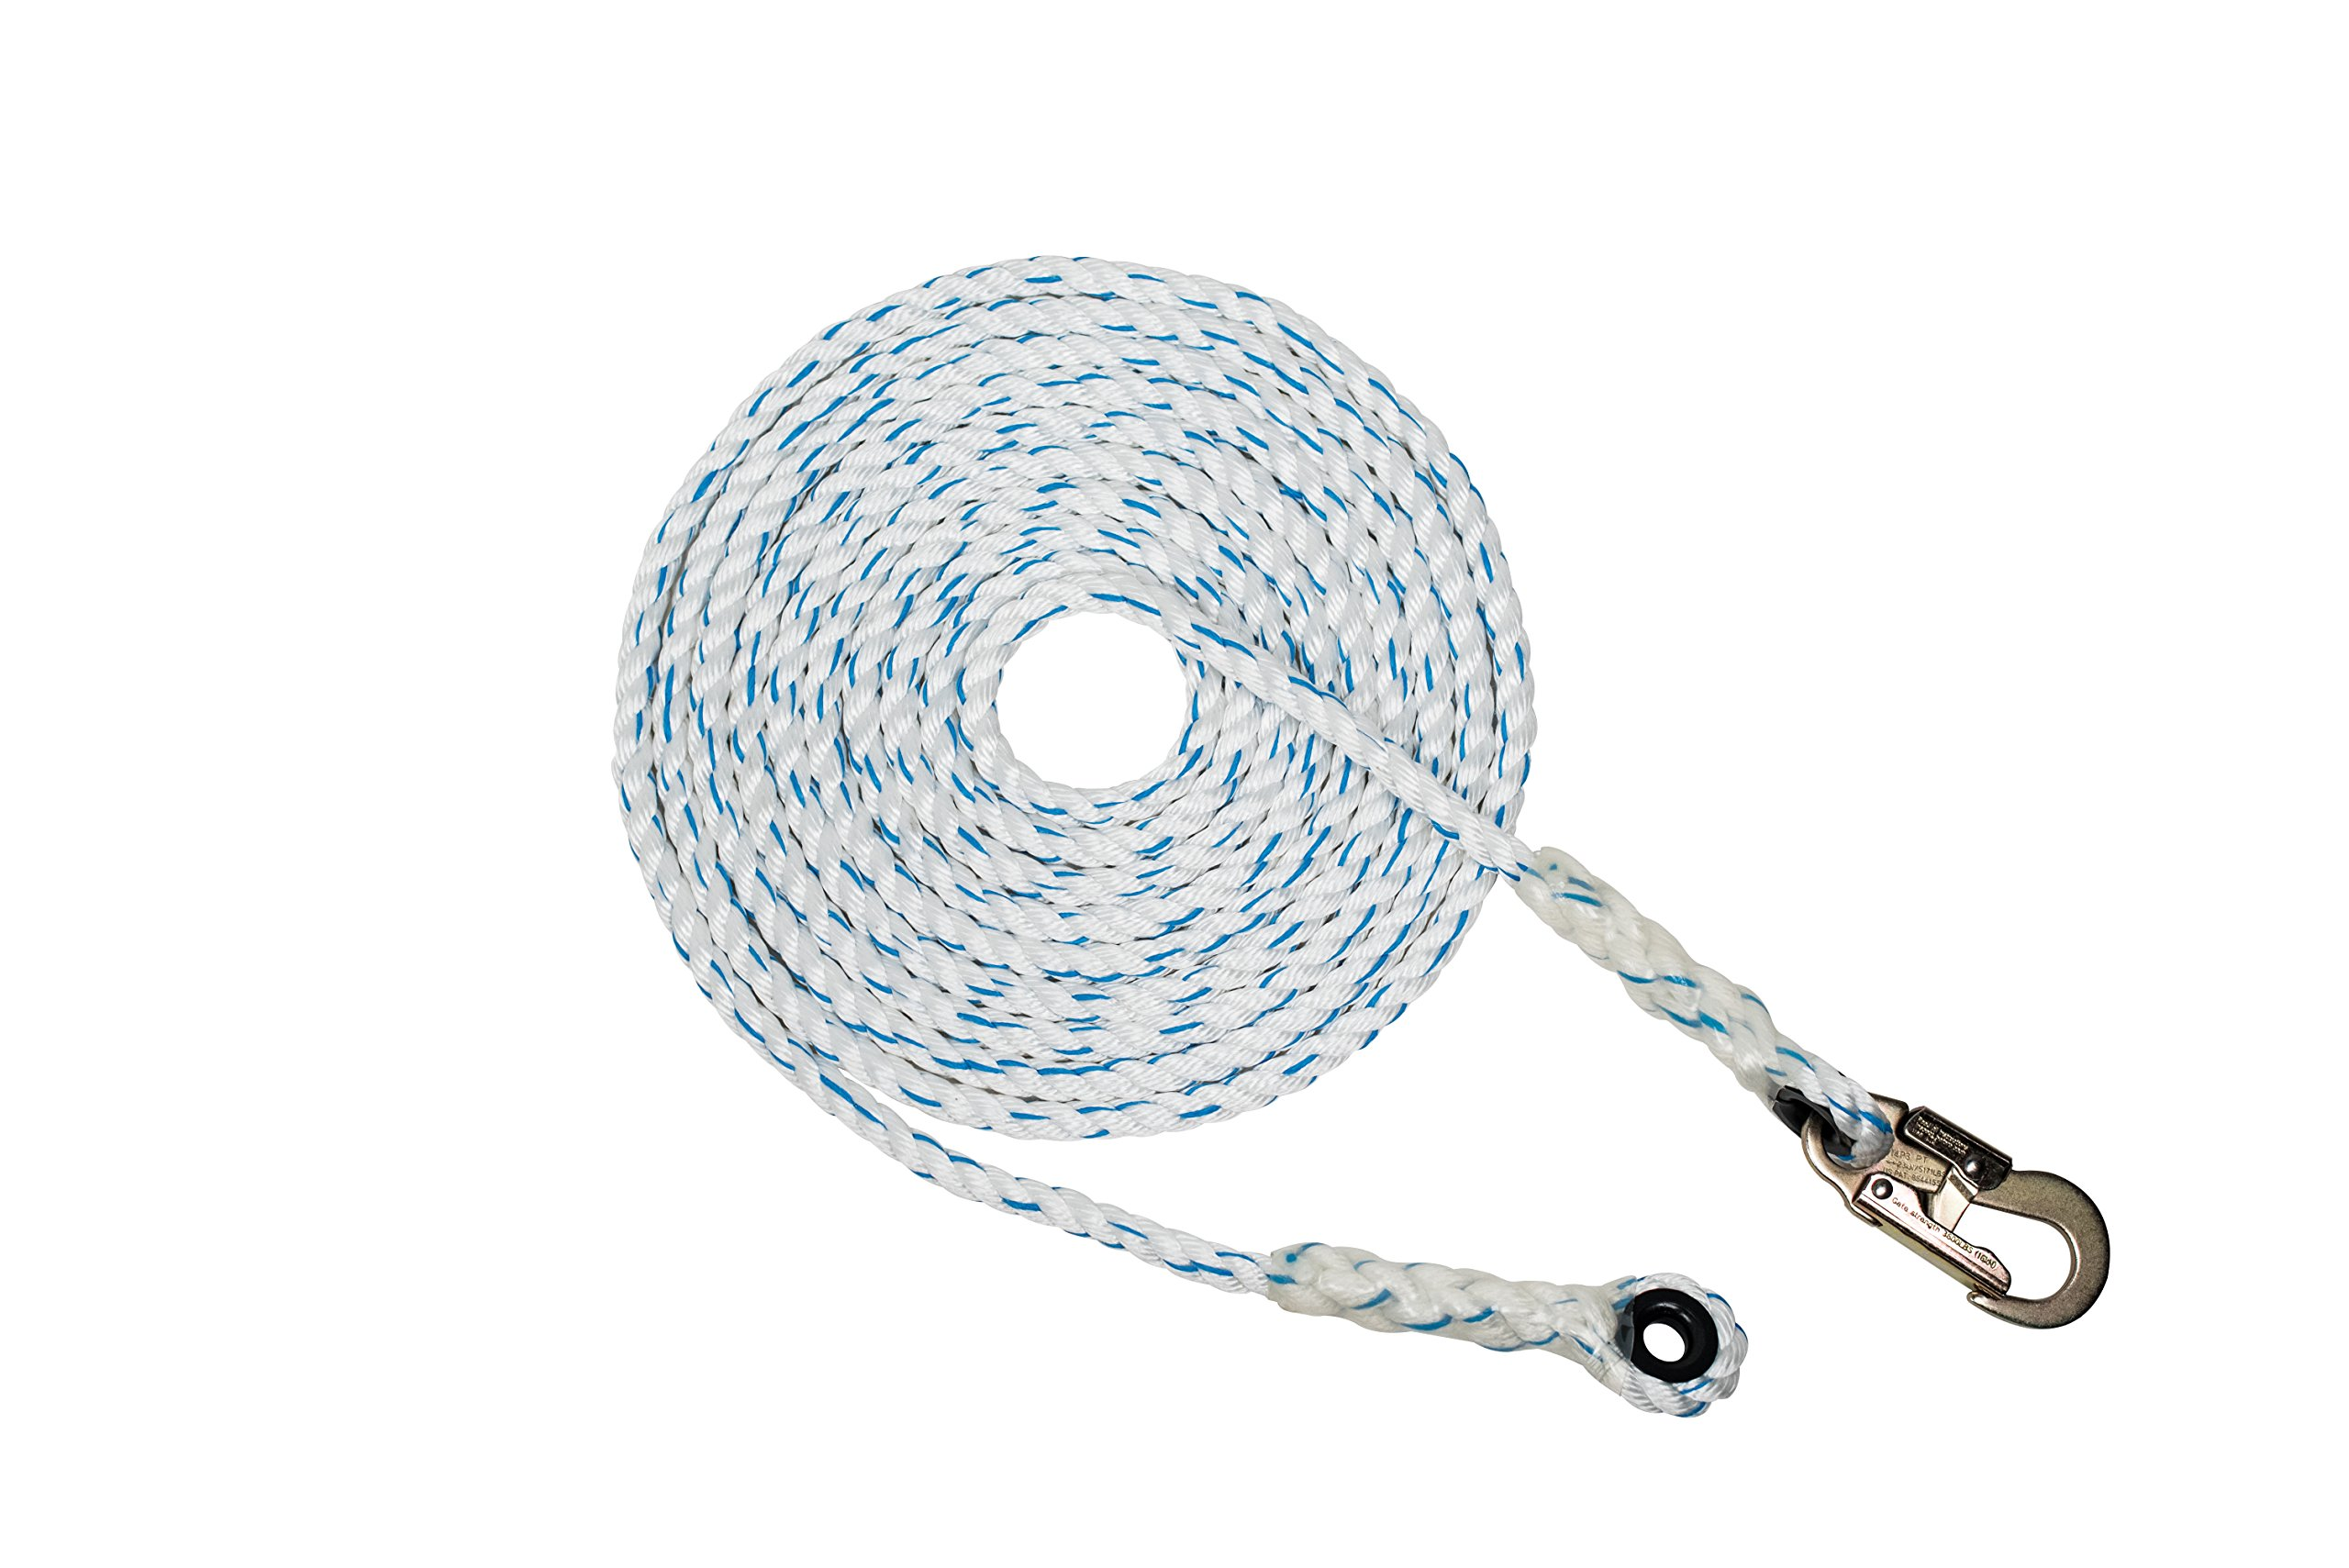 Pelican Rope (5/8 inch x 100 feet) 3-Strand Polyester Composite Vertical Lifeline Rope with Snap Hook and Thimble End by Pelican Rope (Image #1)